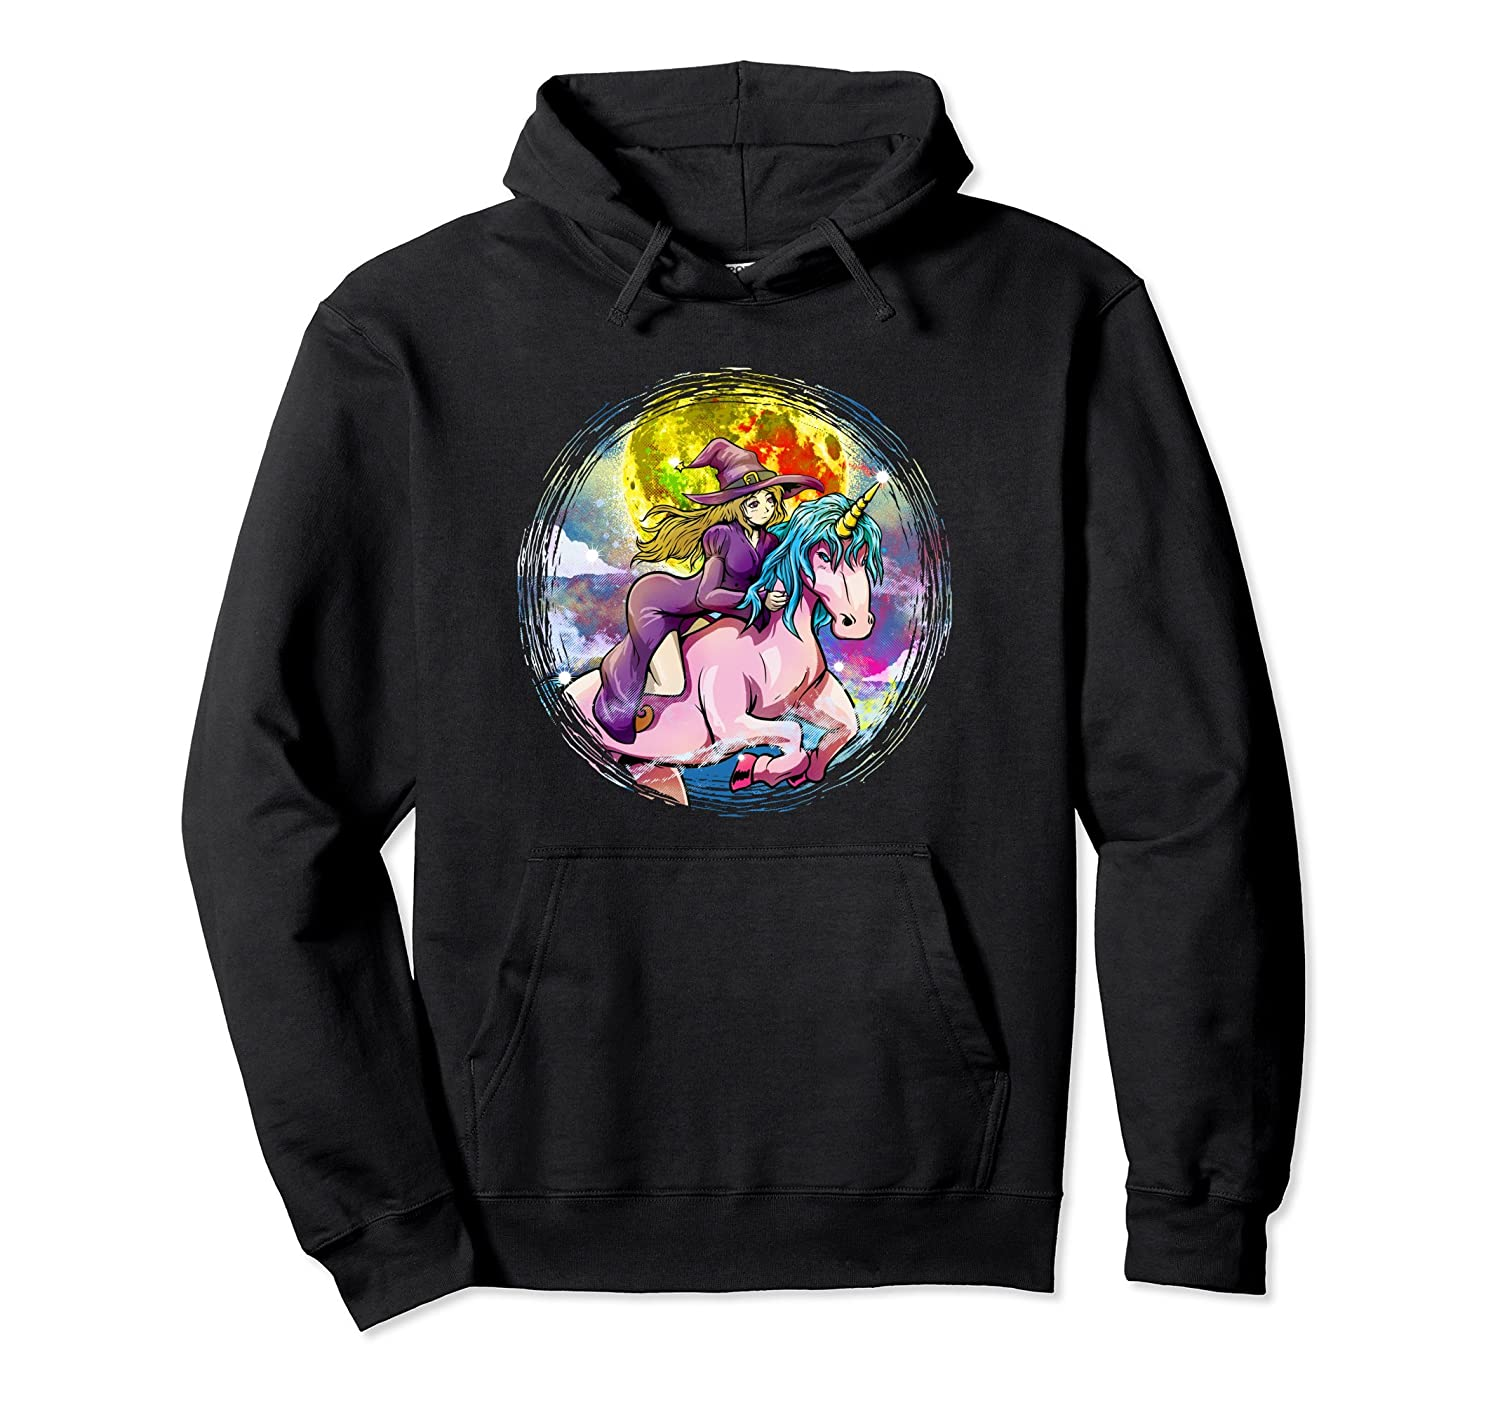 FUNNY HALLOWEEN HOODIE - Sexy Witch Unicorn Anime-mt